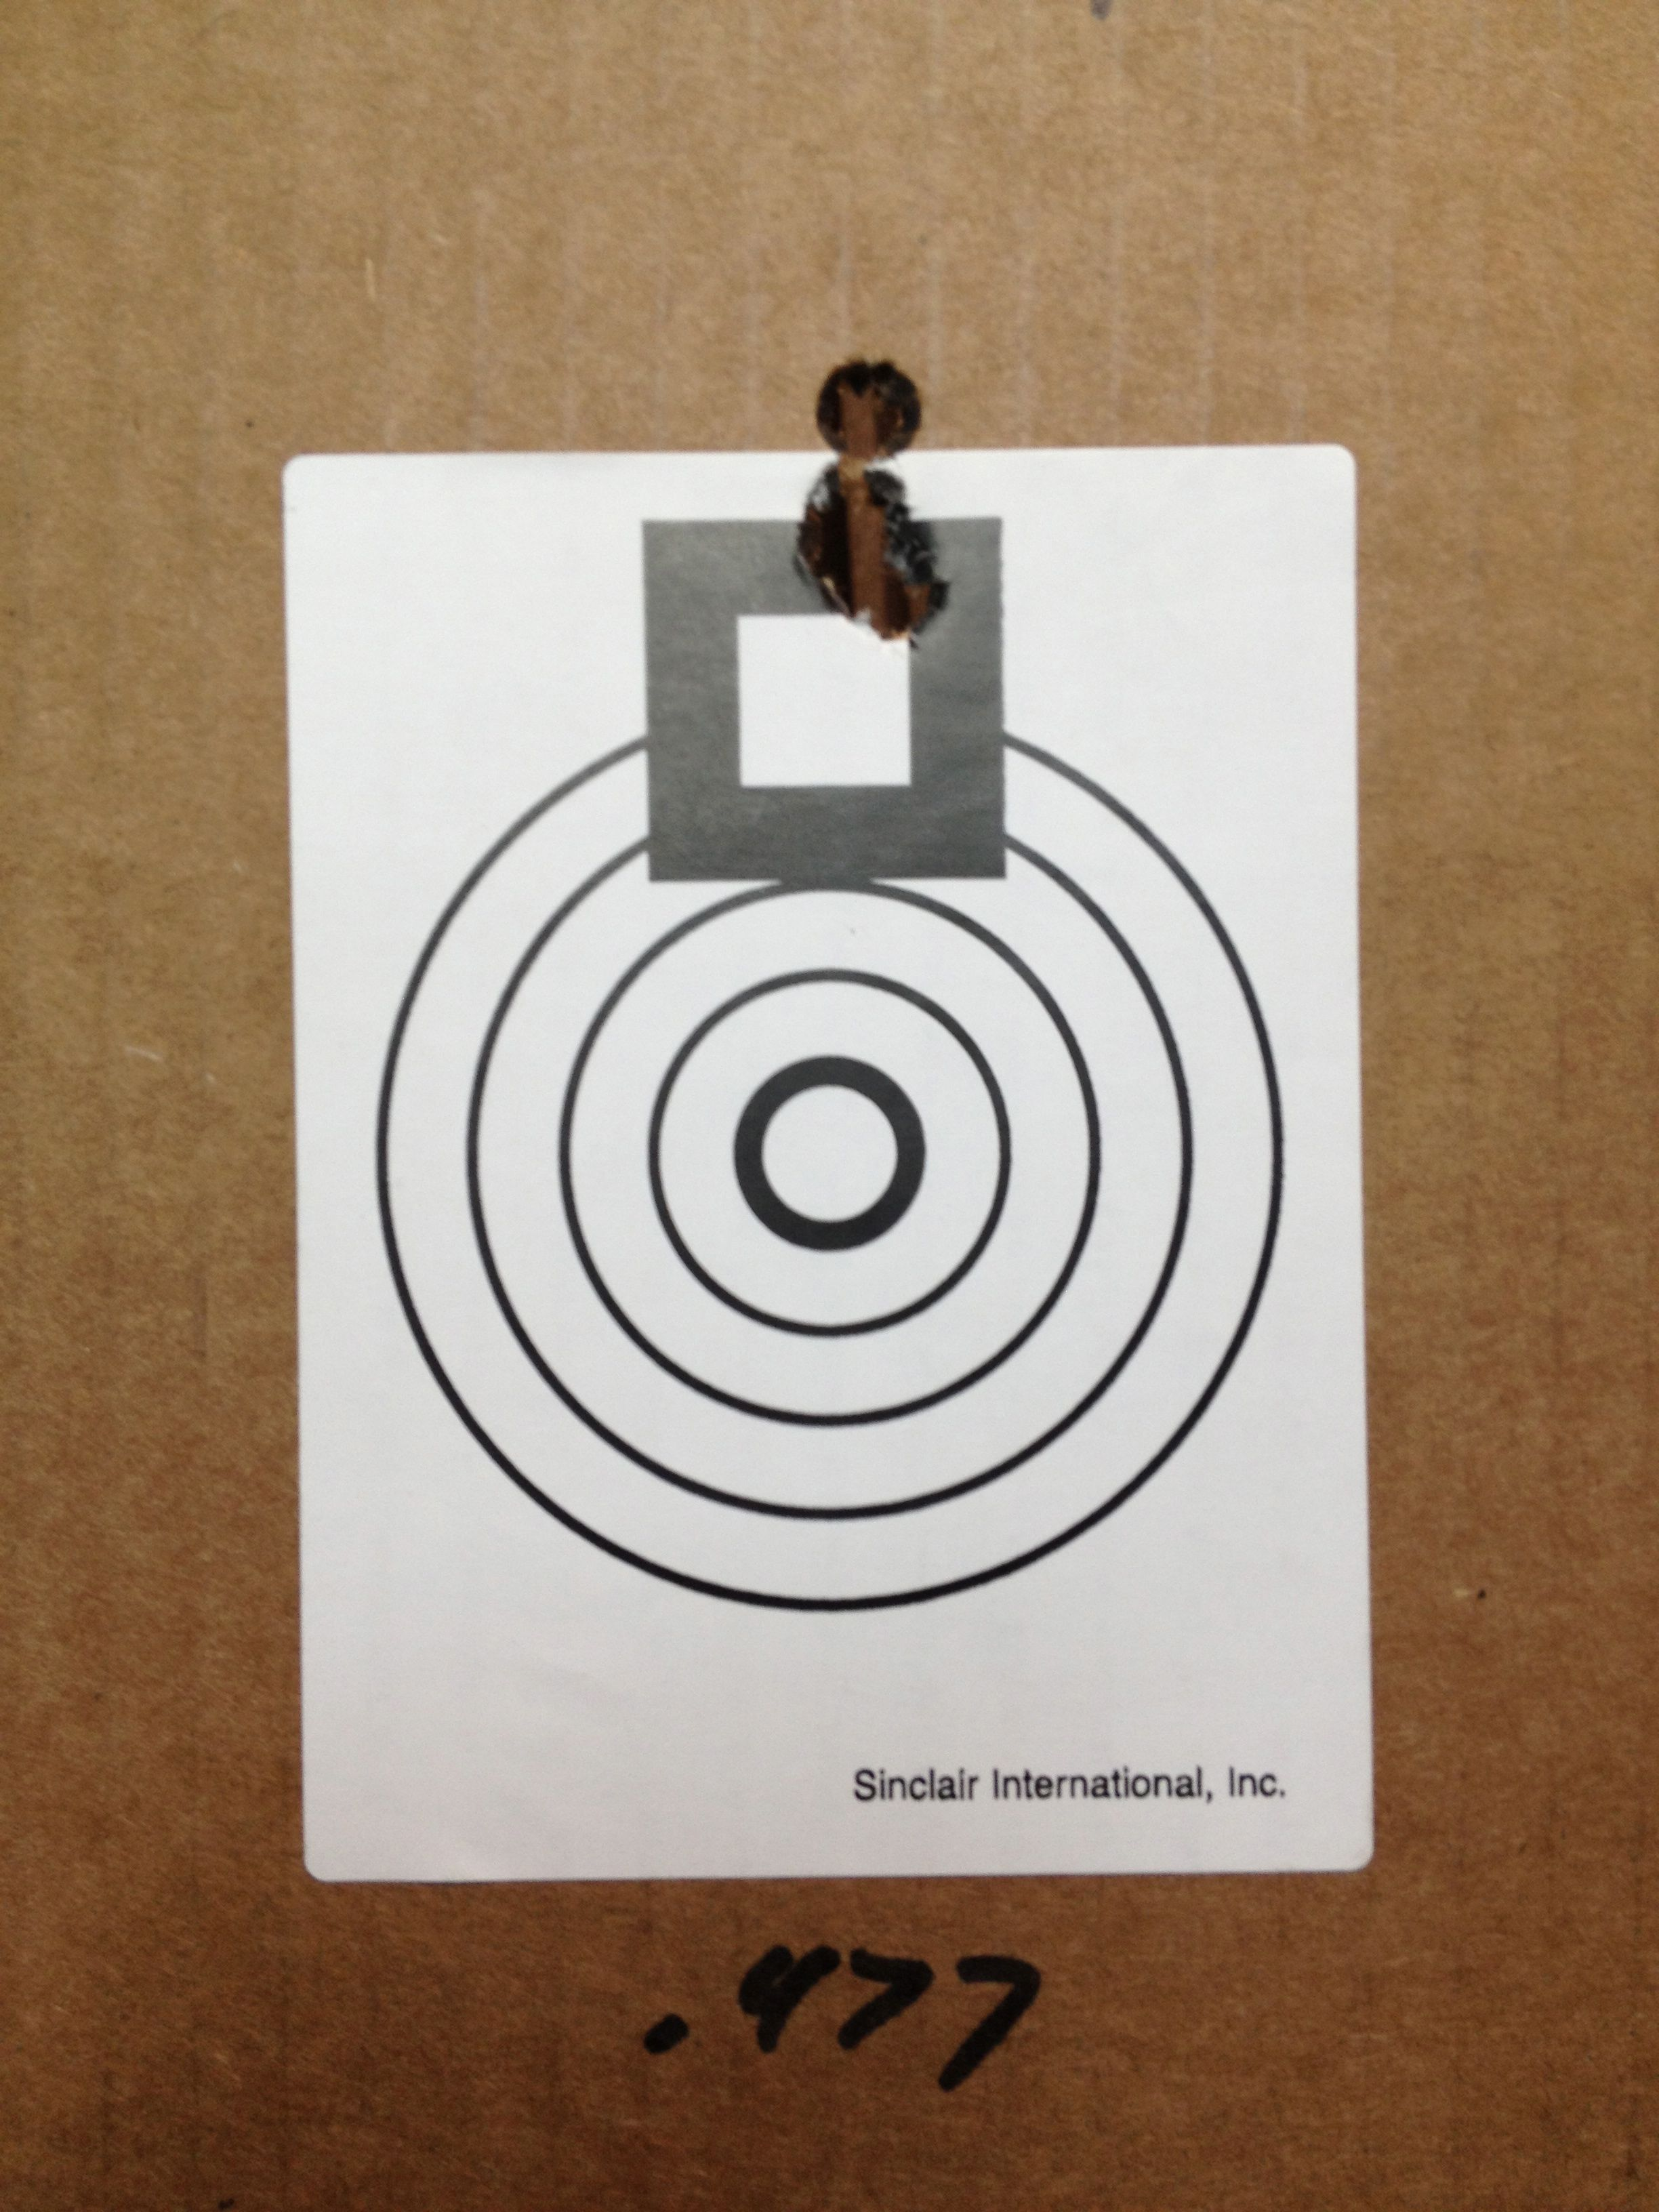 Benchrest targets on a roll, throw them in a bag and don't be stuck without precision rifle targets again!